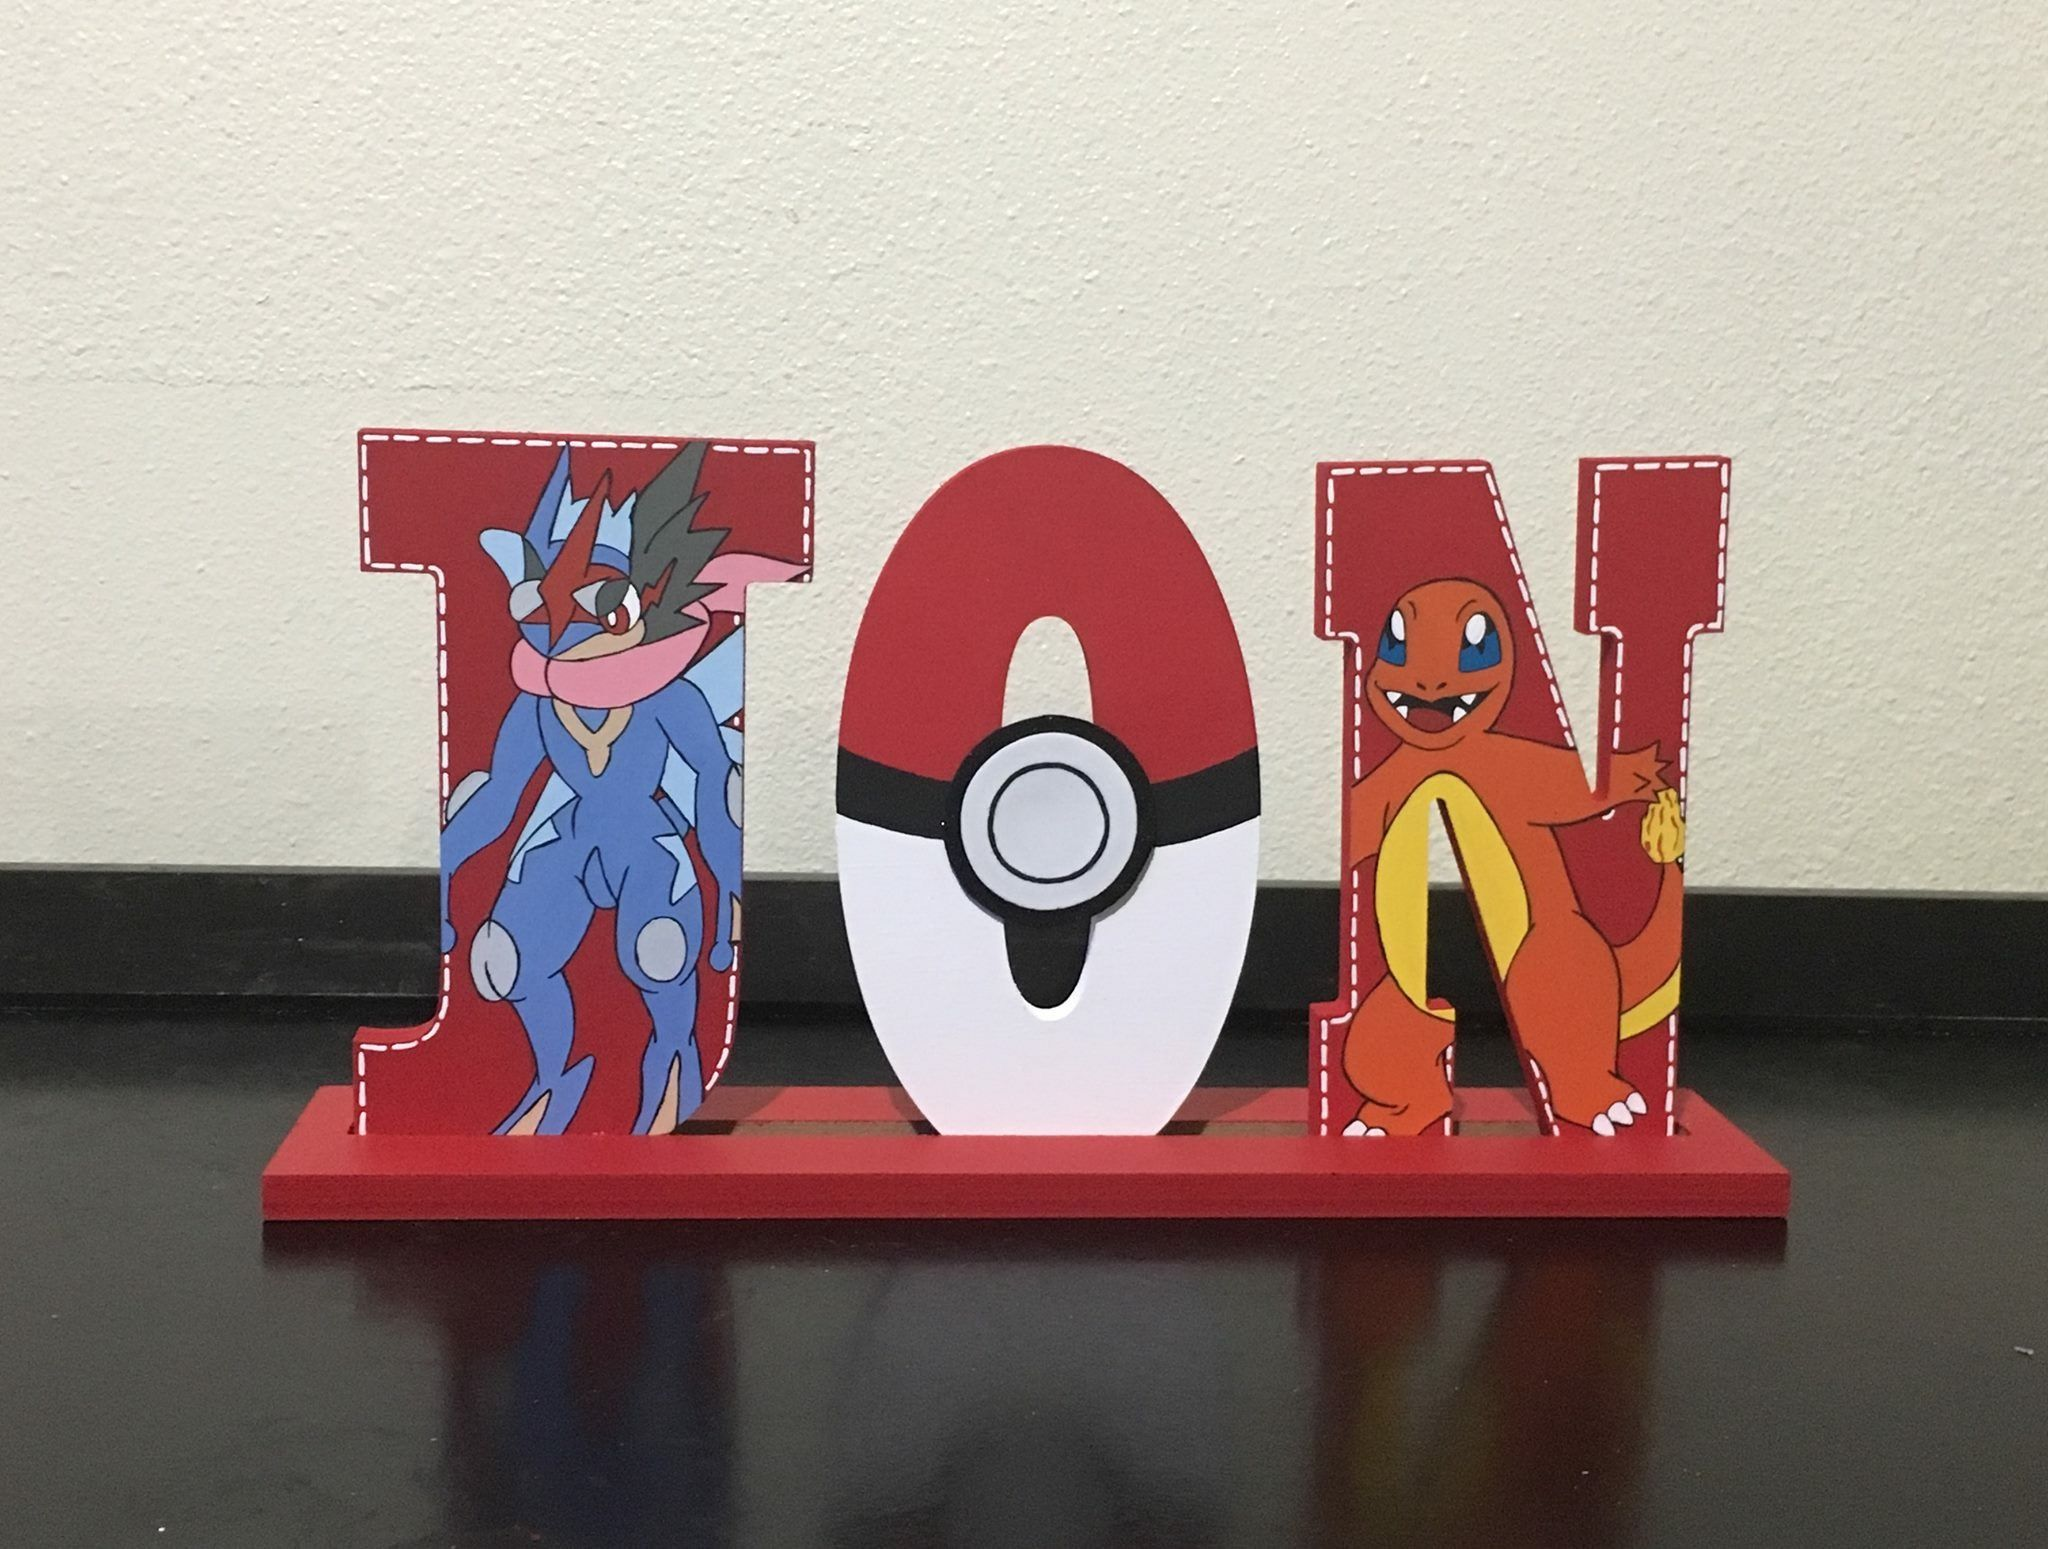 Cartoon Characters 8 Letters : Pokémon 8 inches wooden letters wood letters pinterest